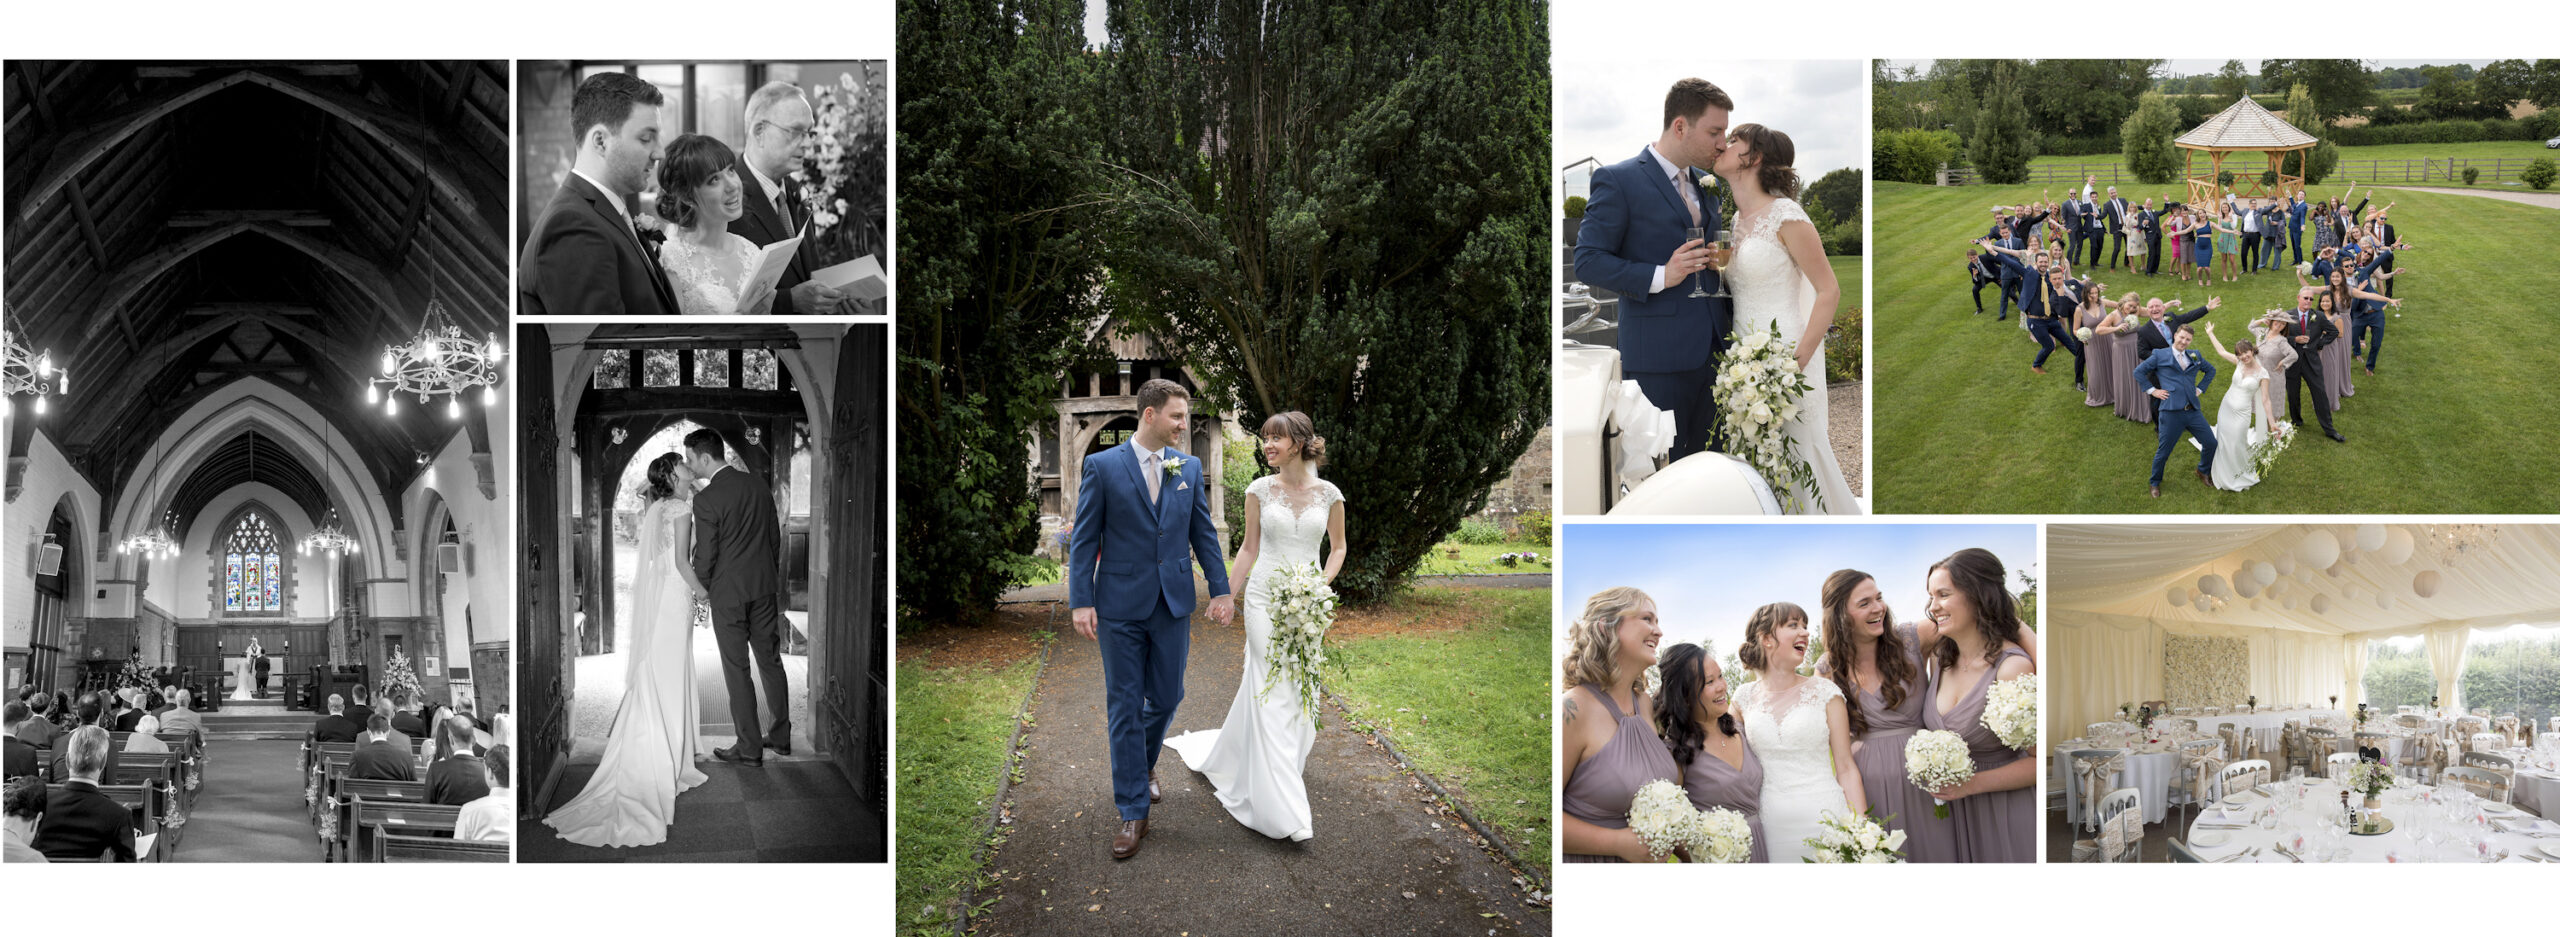 Wedding Photography Manor Hill House, Worcestershire